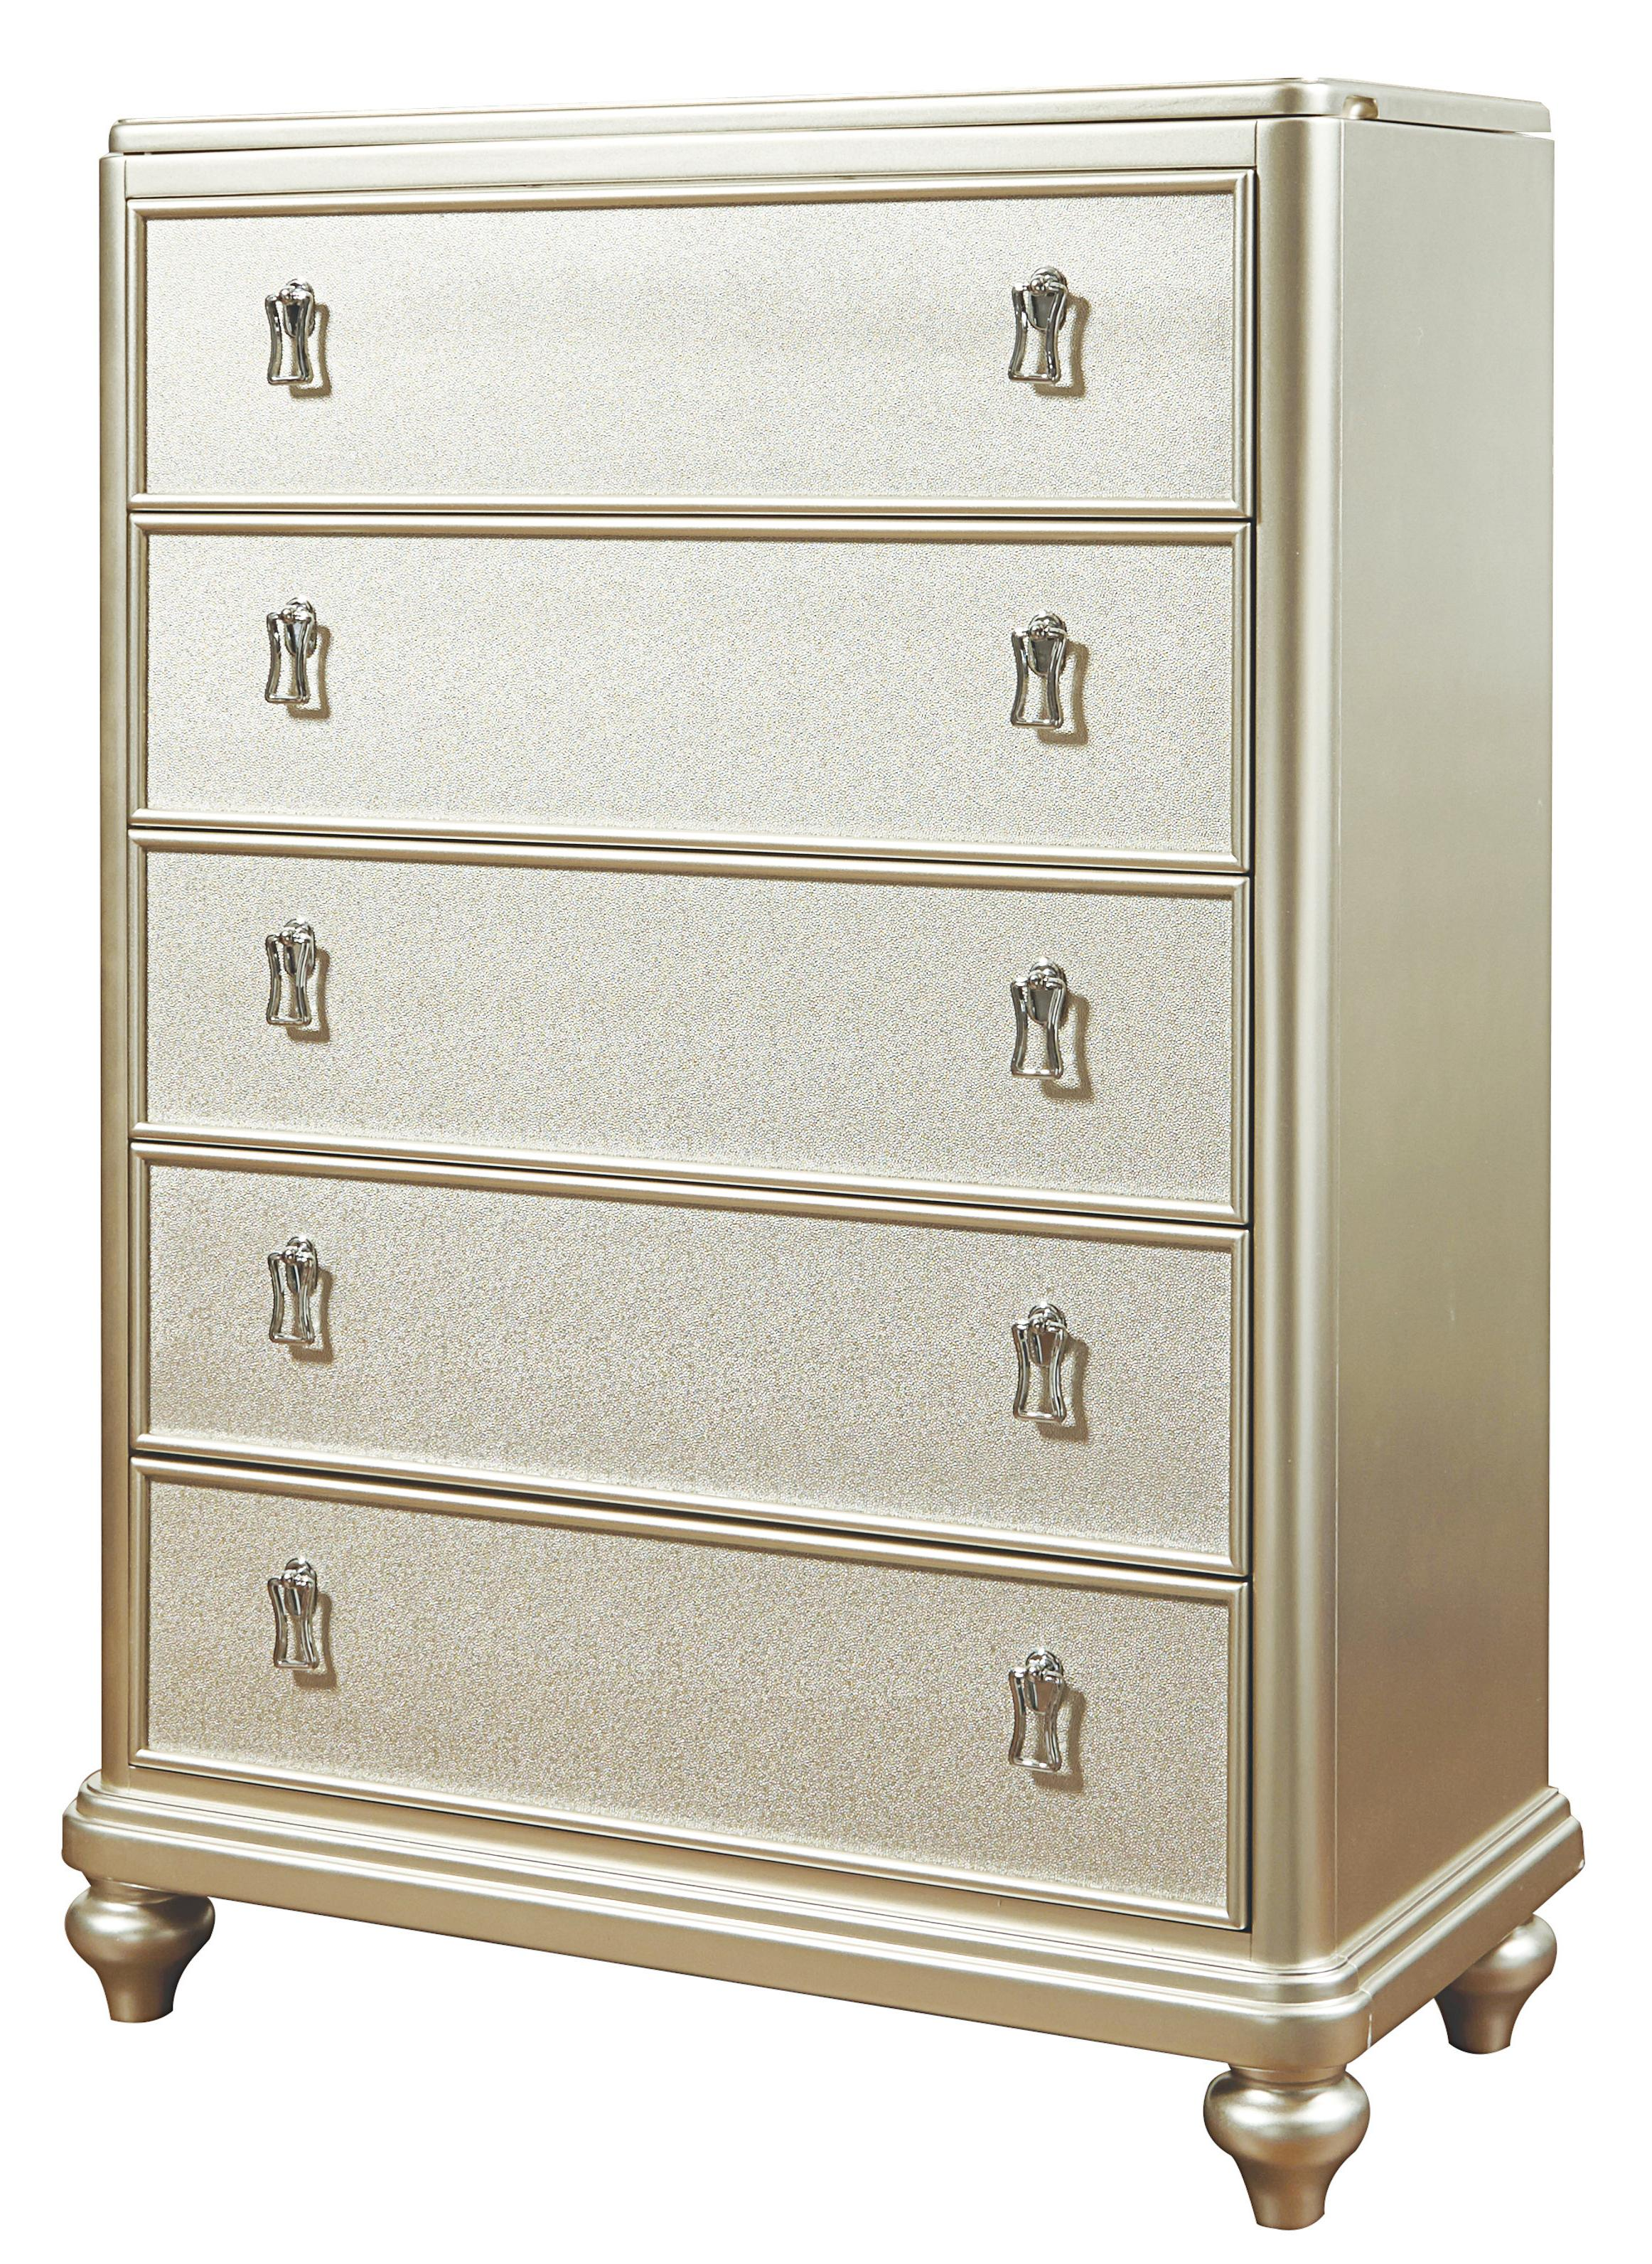 South Beach South Beach Chest by Samuel Lawrence at Morris Home